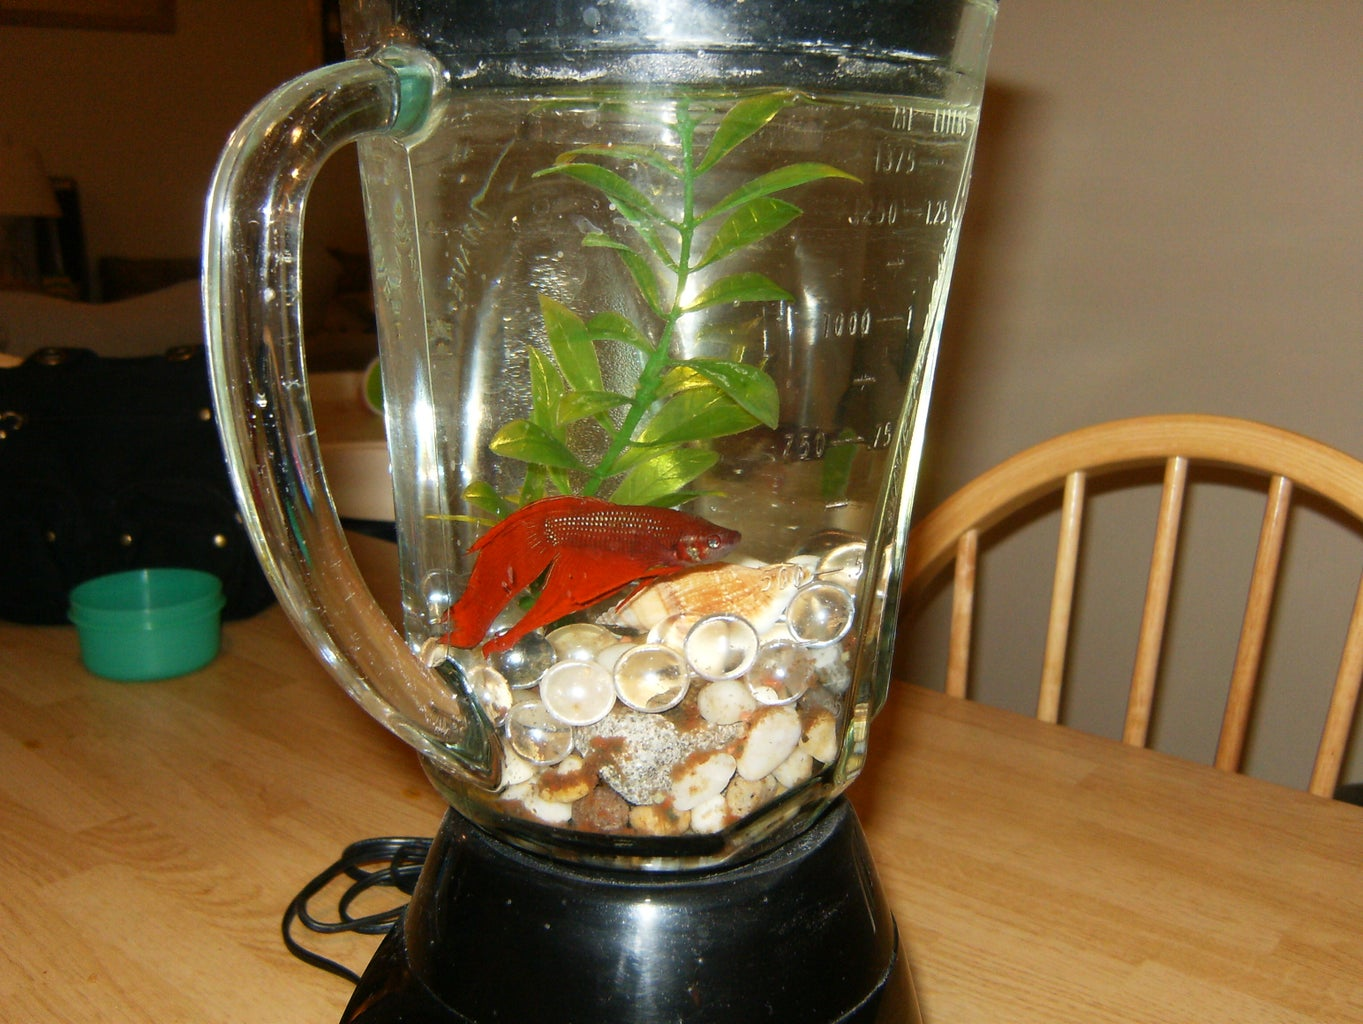 Will My Blender Work As a Fish Tank?